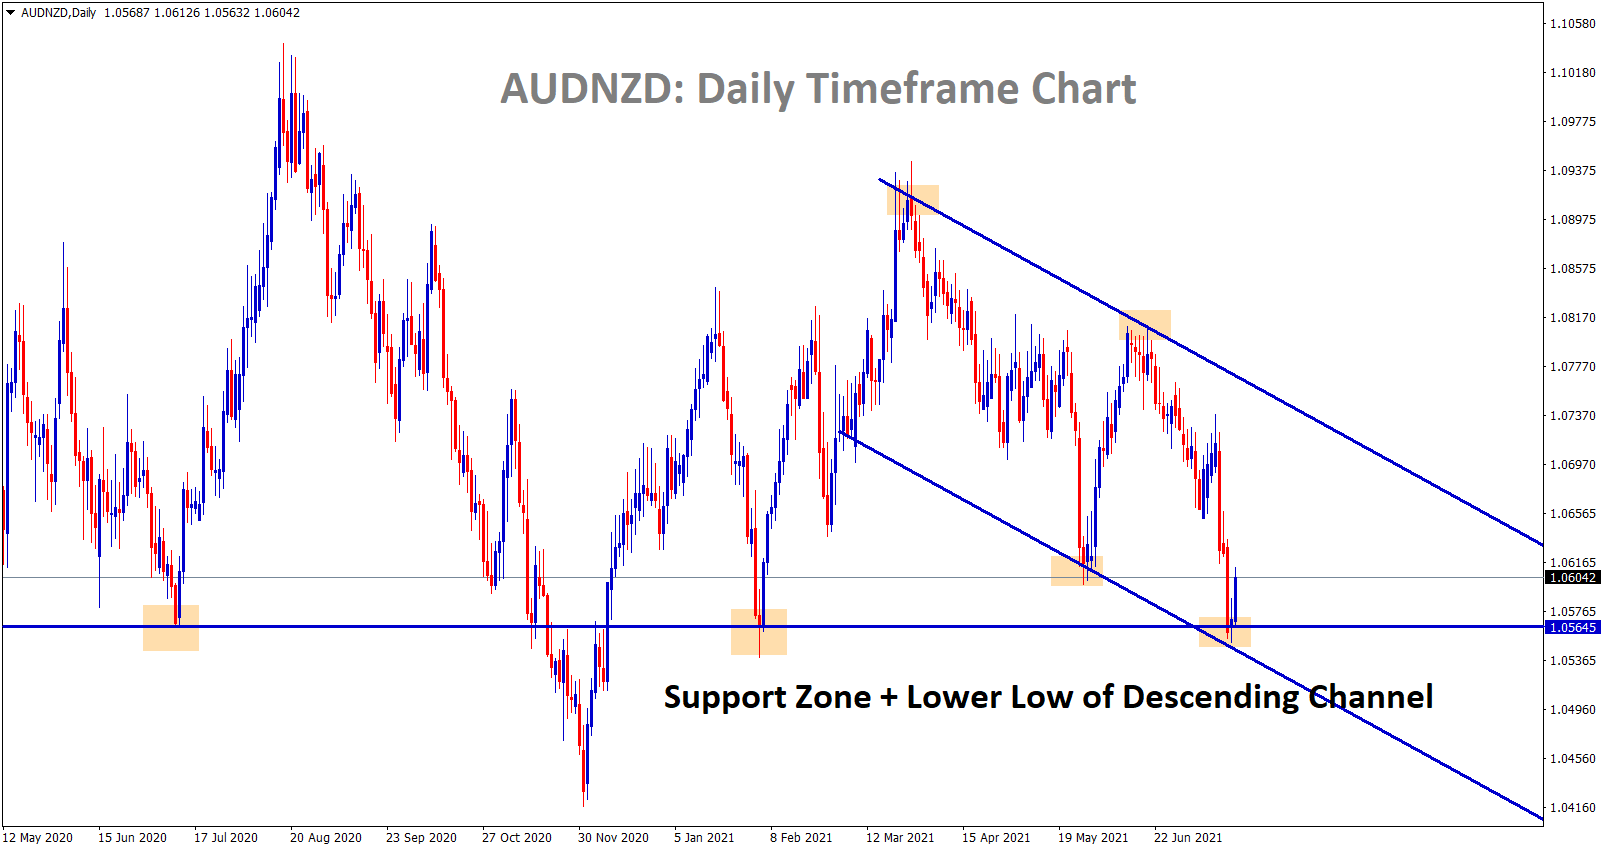 AUDNZD hits the support and bouncing back from the lower low of the descending channel